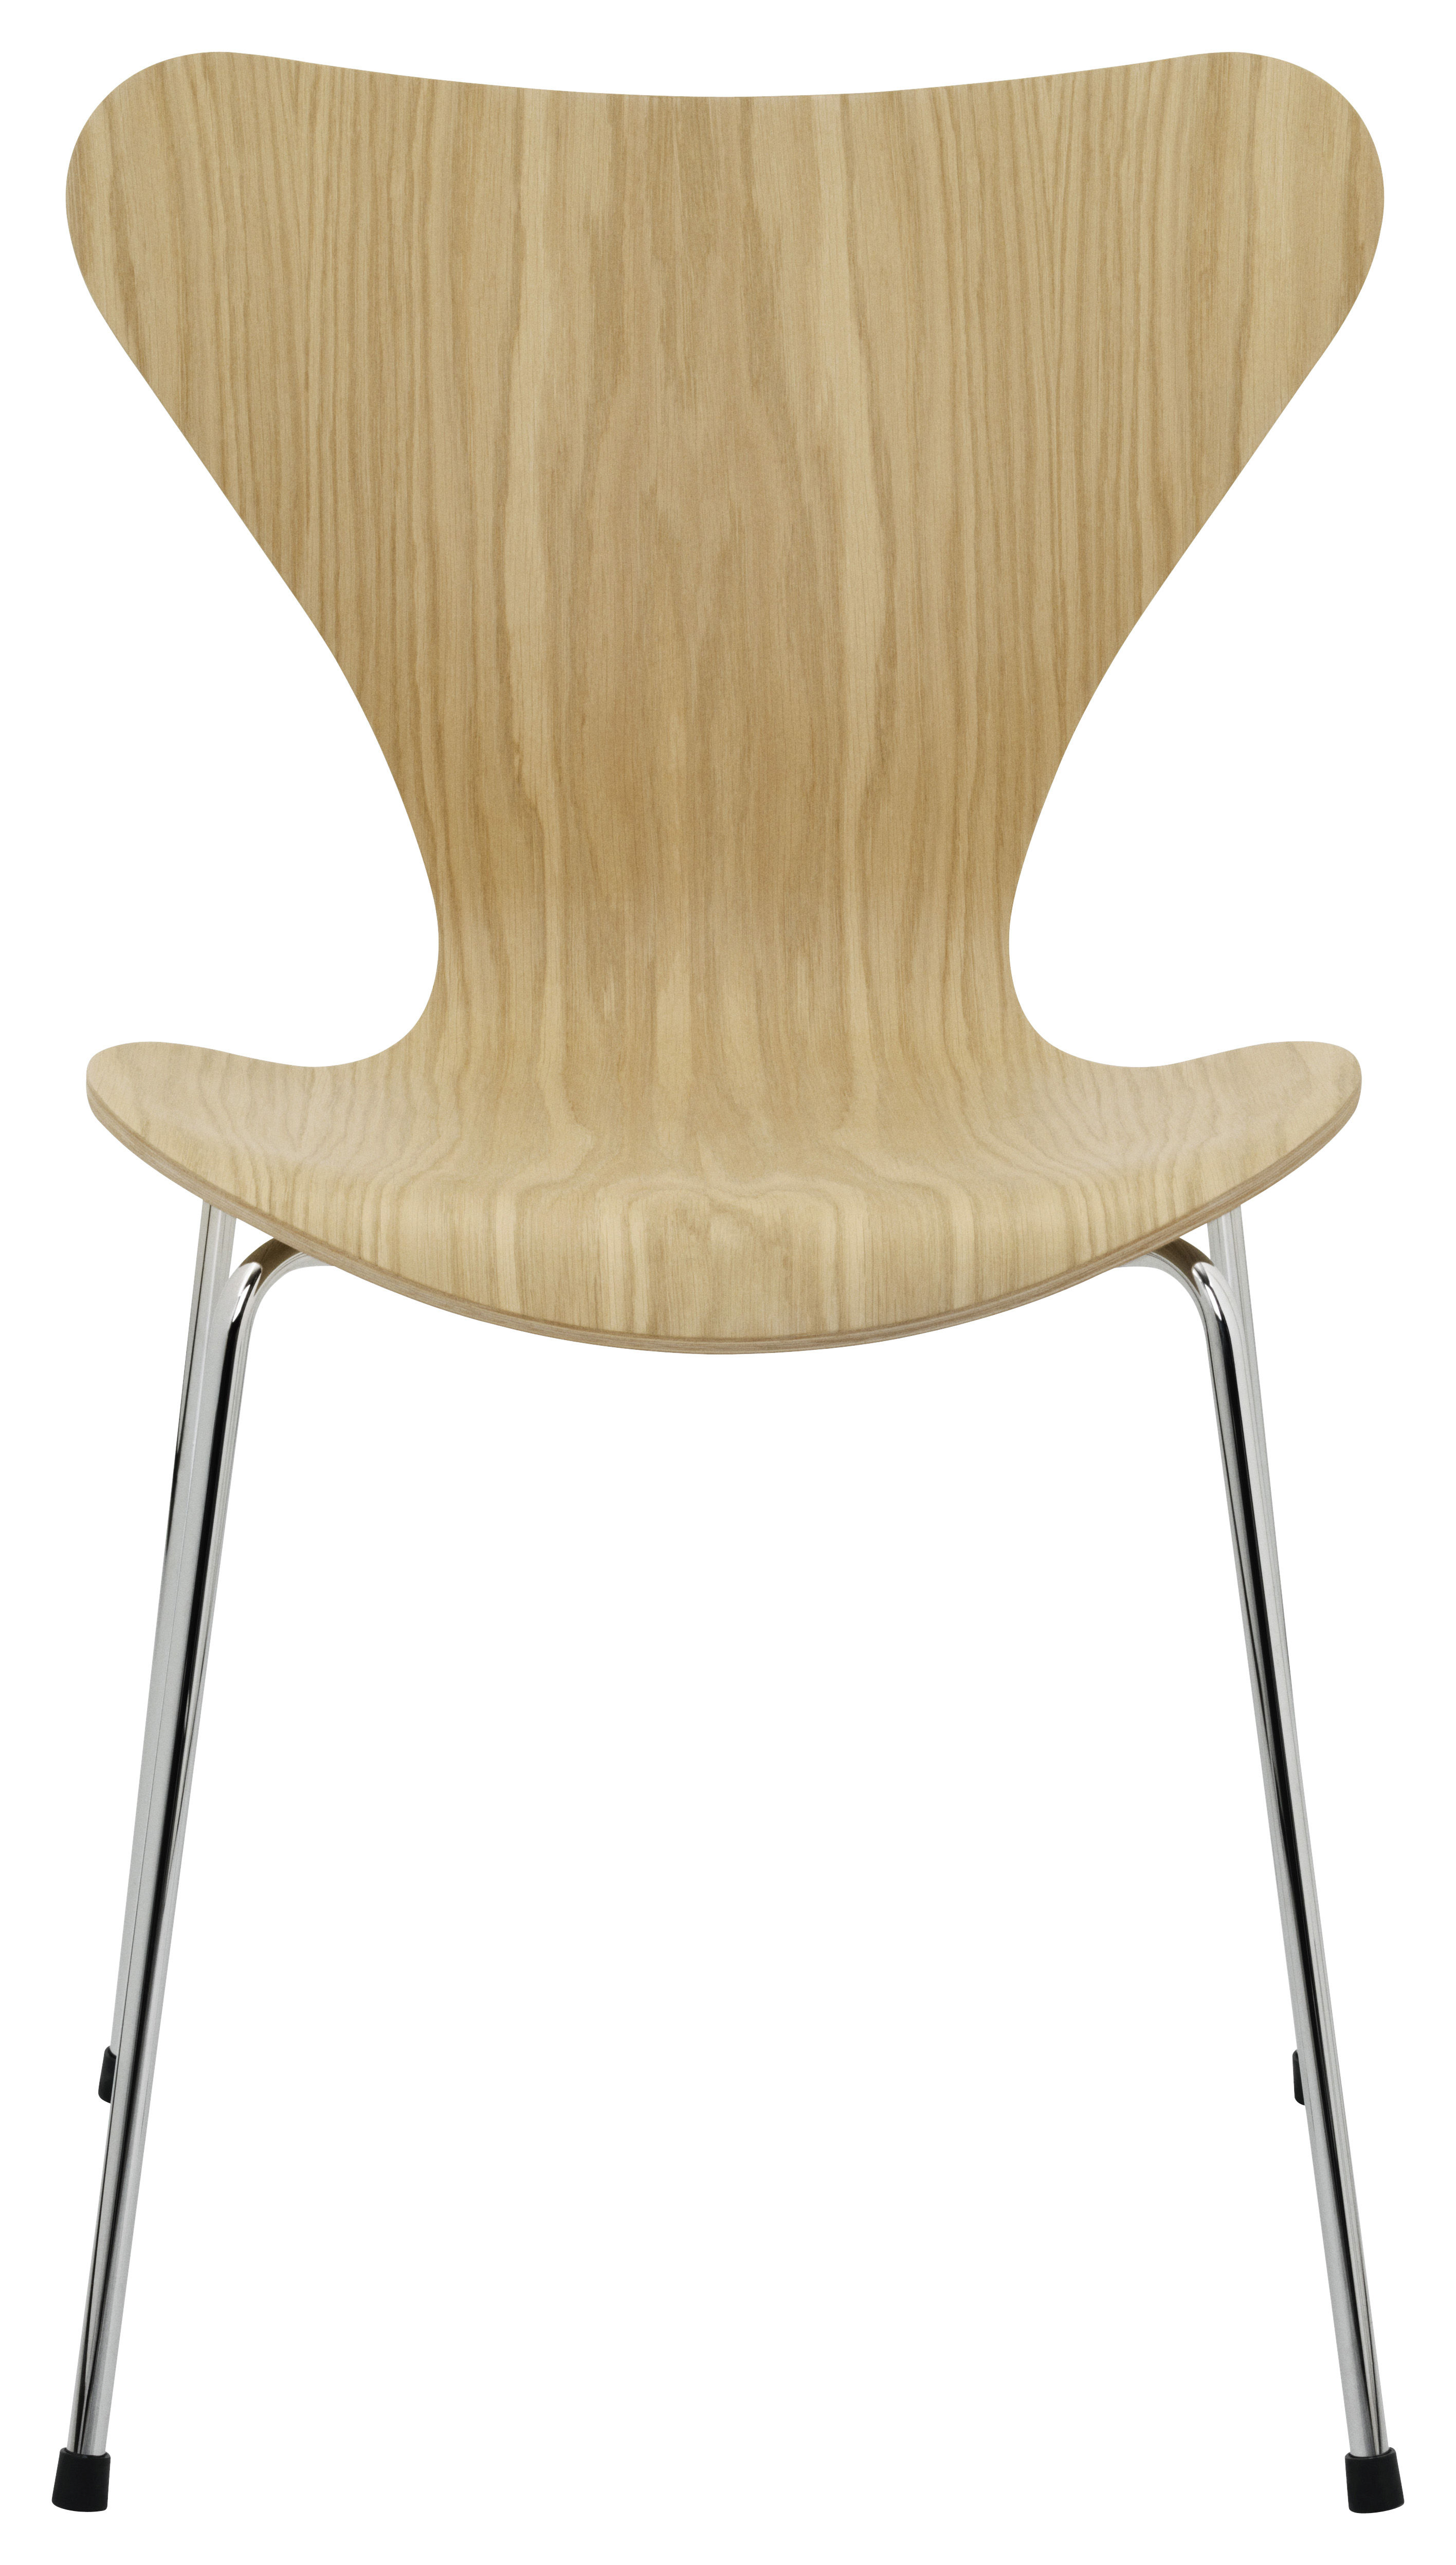 Furniture - Chairs - Série 7 Stacking chair - Natural wood by Fritz Hansen - Oak - Steel, Varnished oak plywood